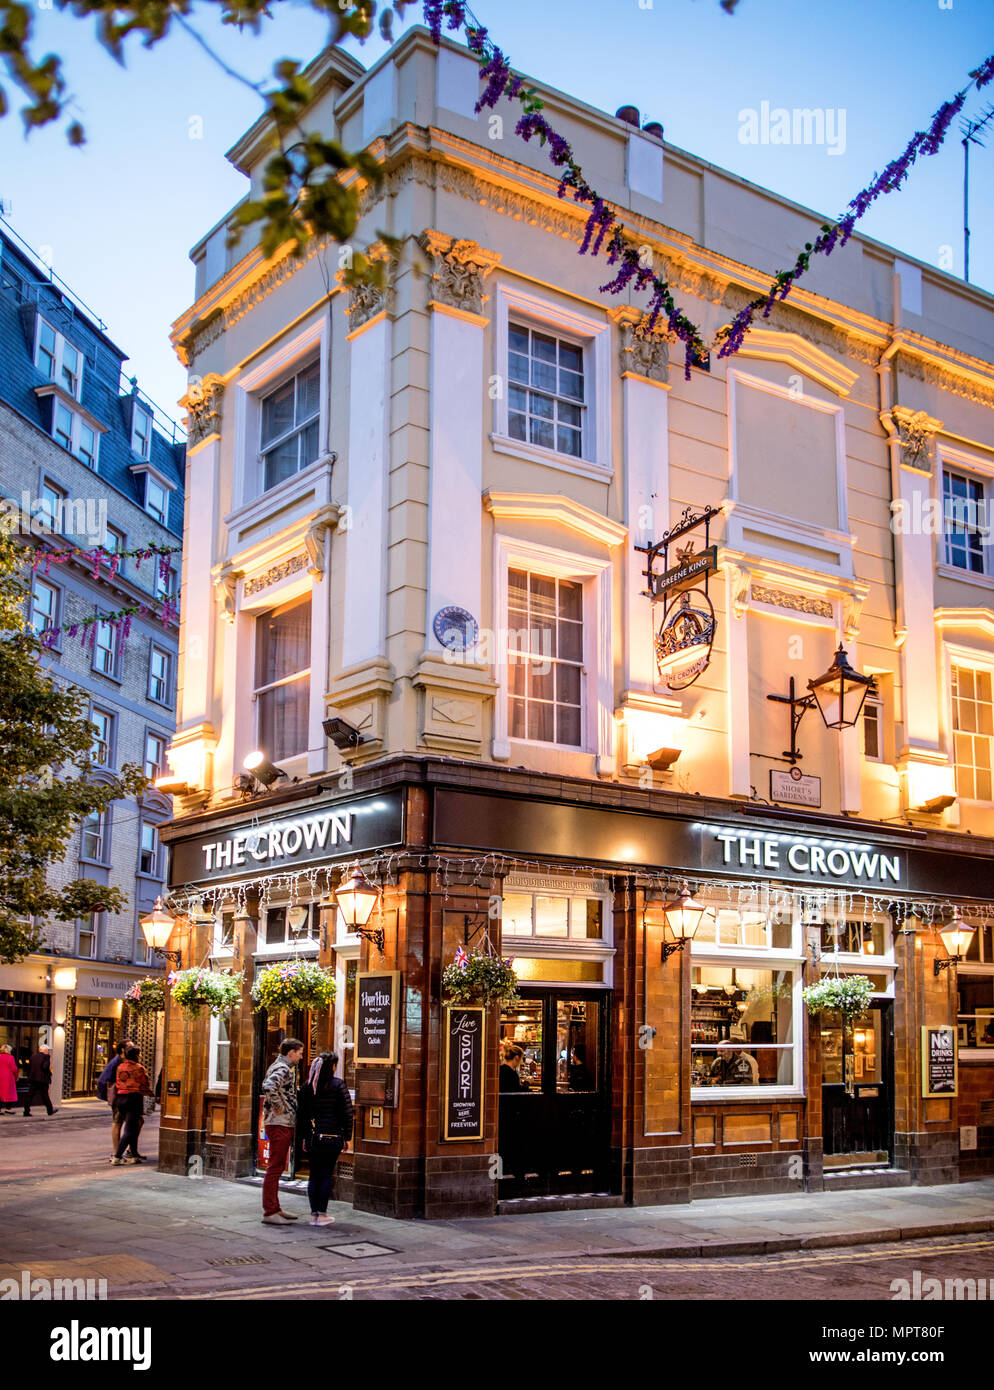 The Crwn Pub at Night The Seven Dials London UK - Stock Image